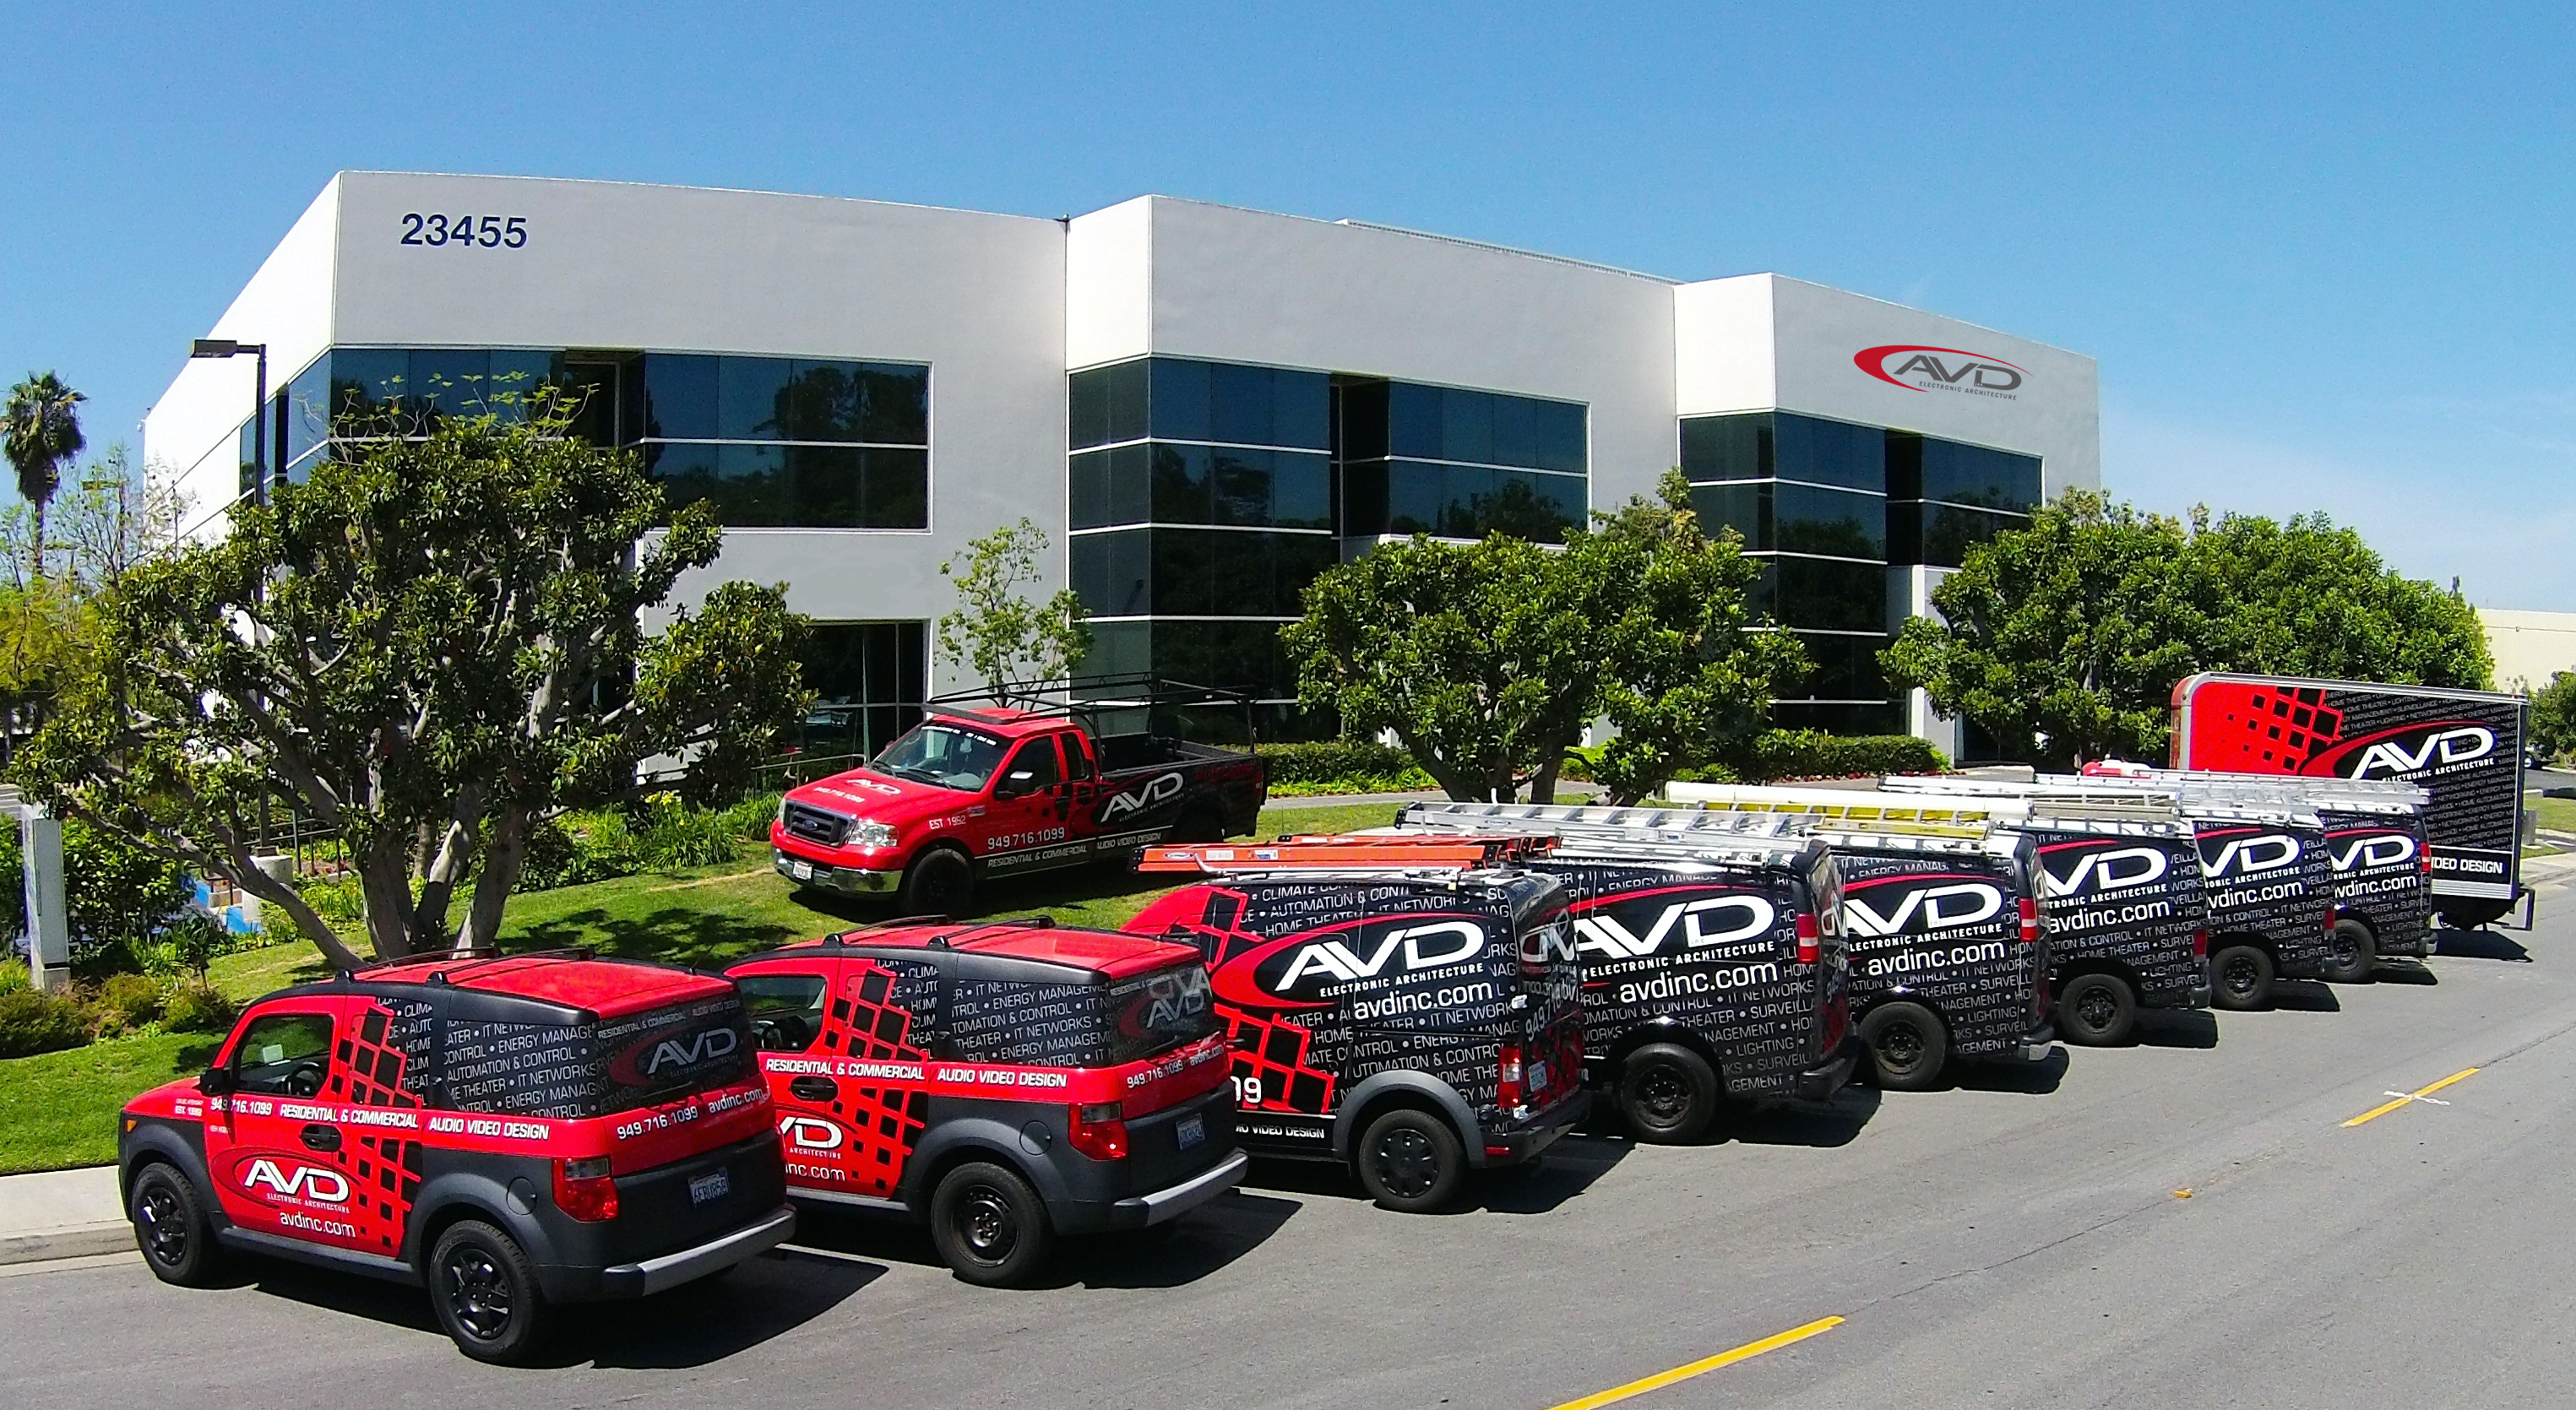 AVD Bldg Fleet